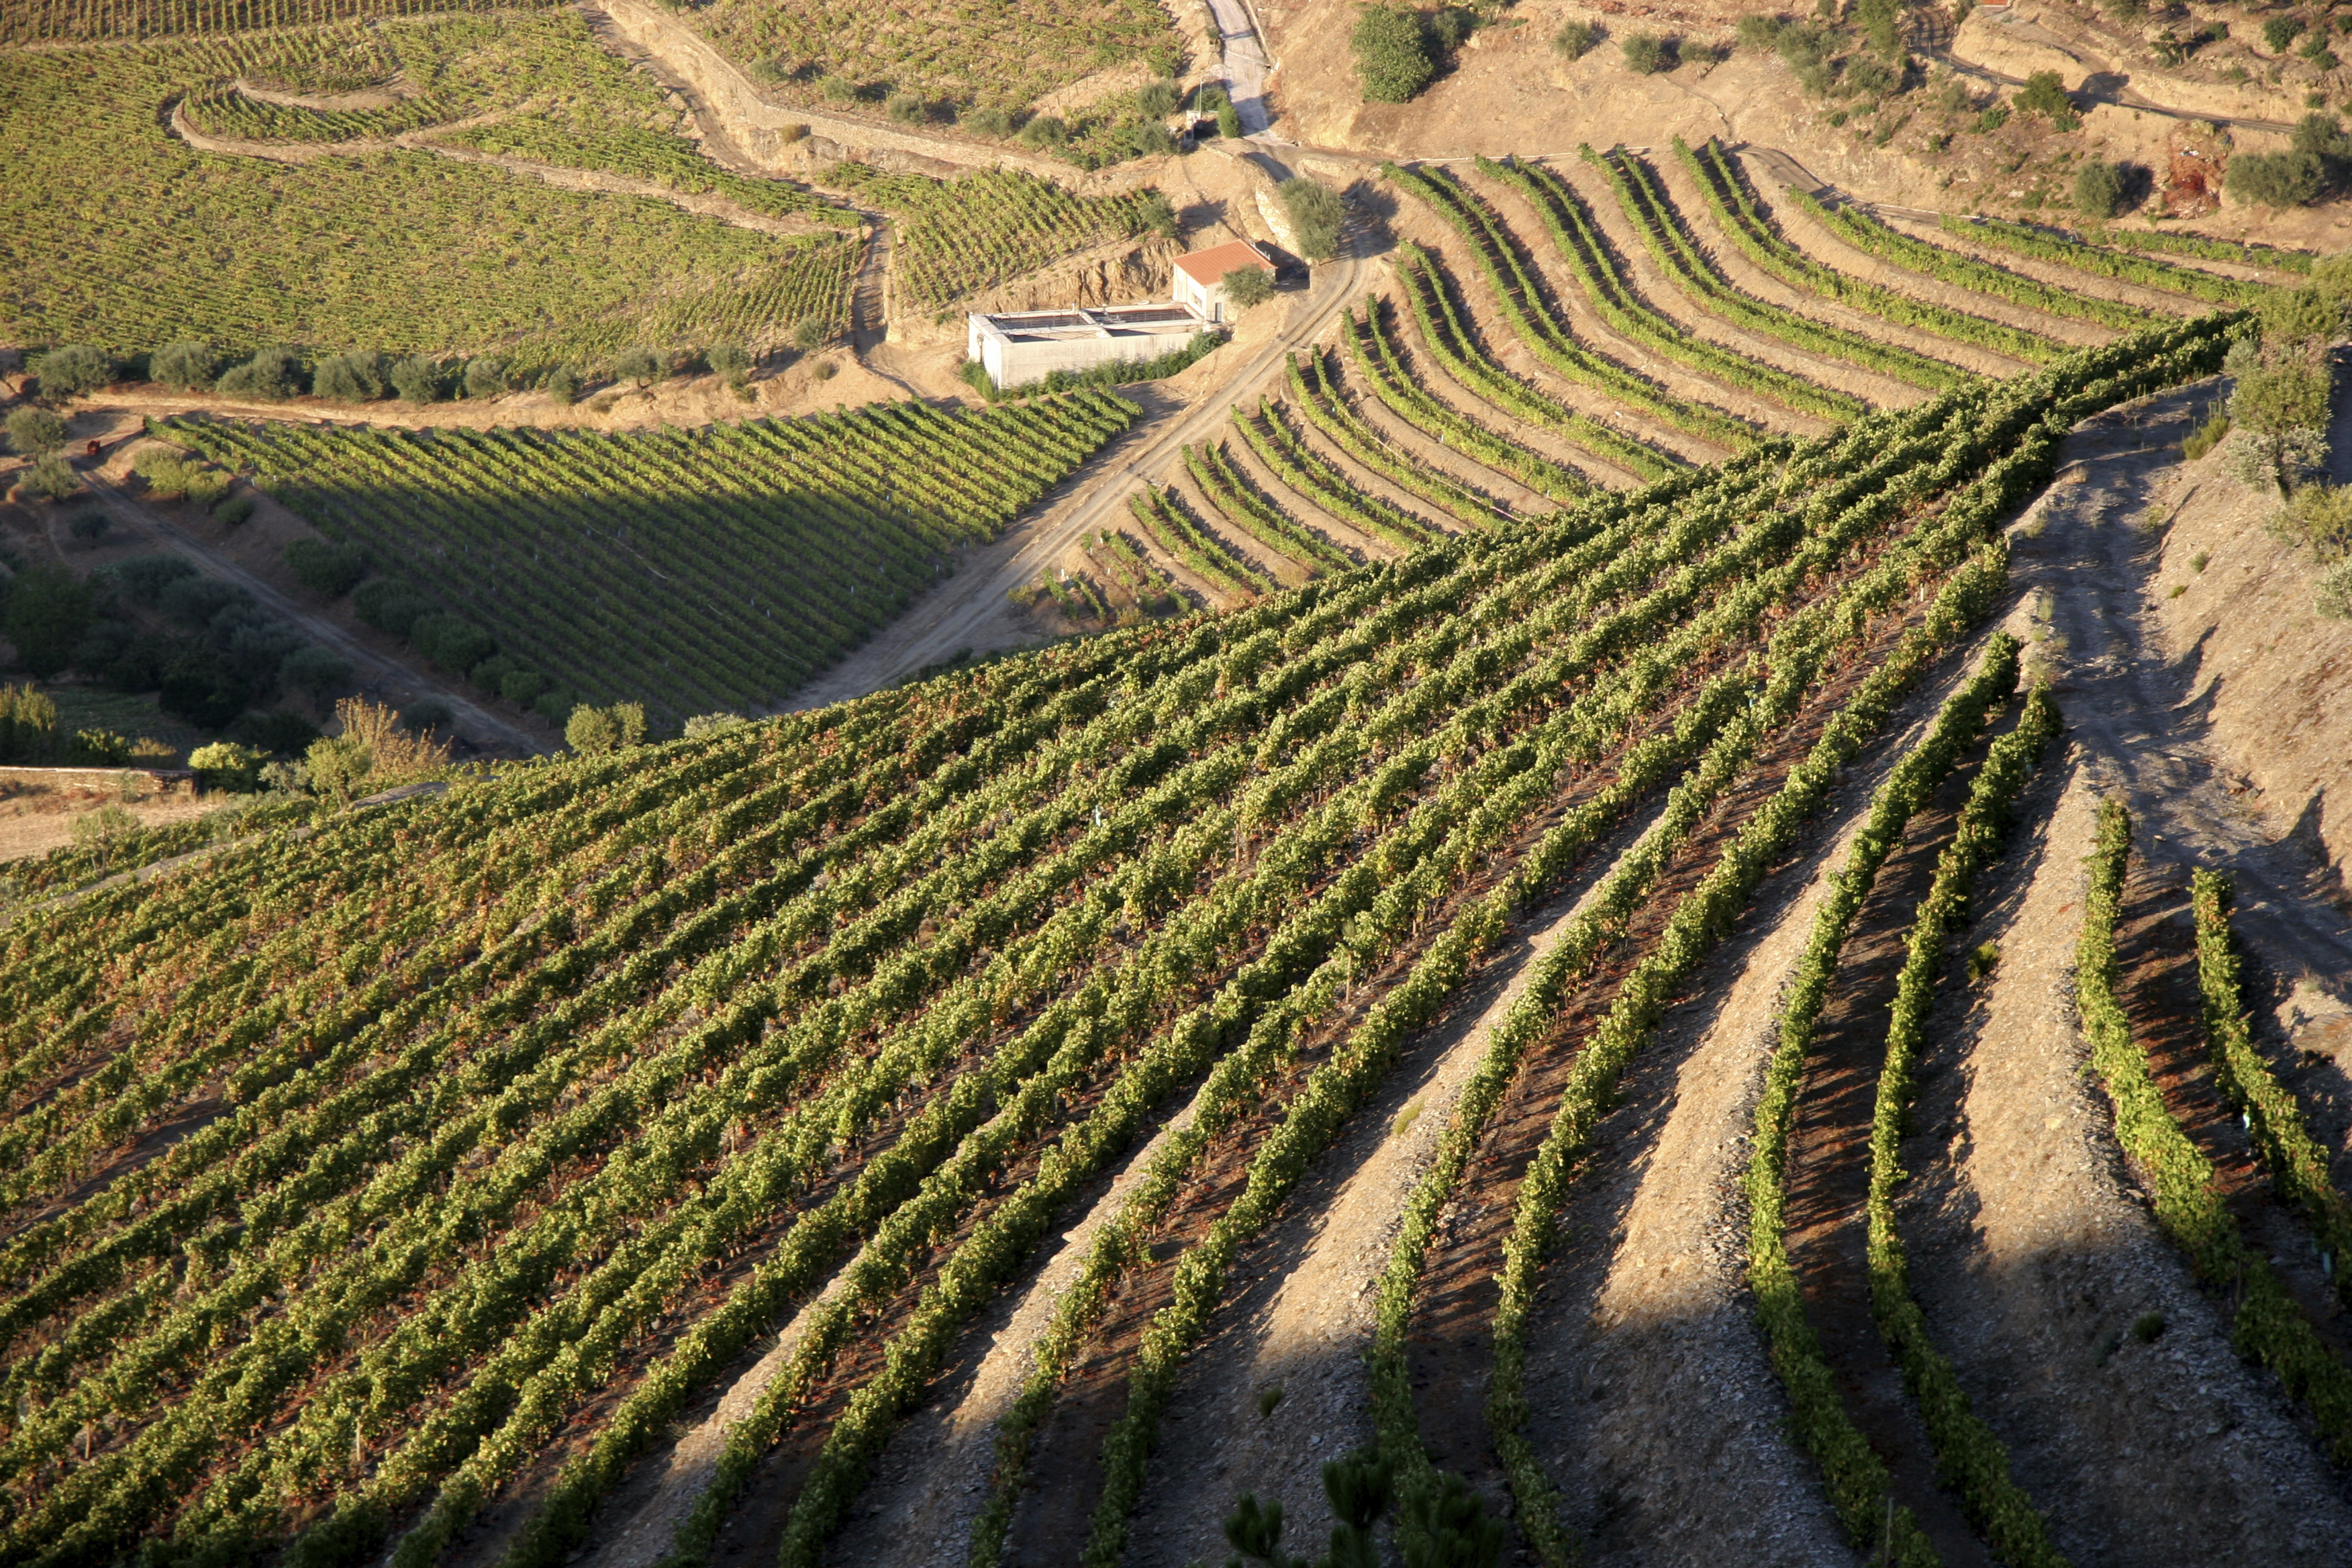 Portugal's Douro Valley is renowned for its vineyards